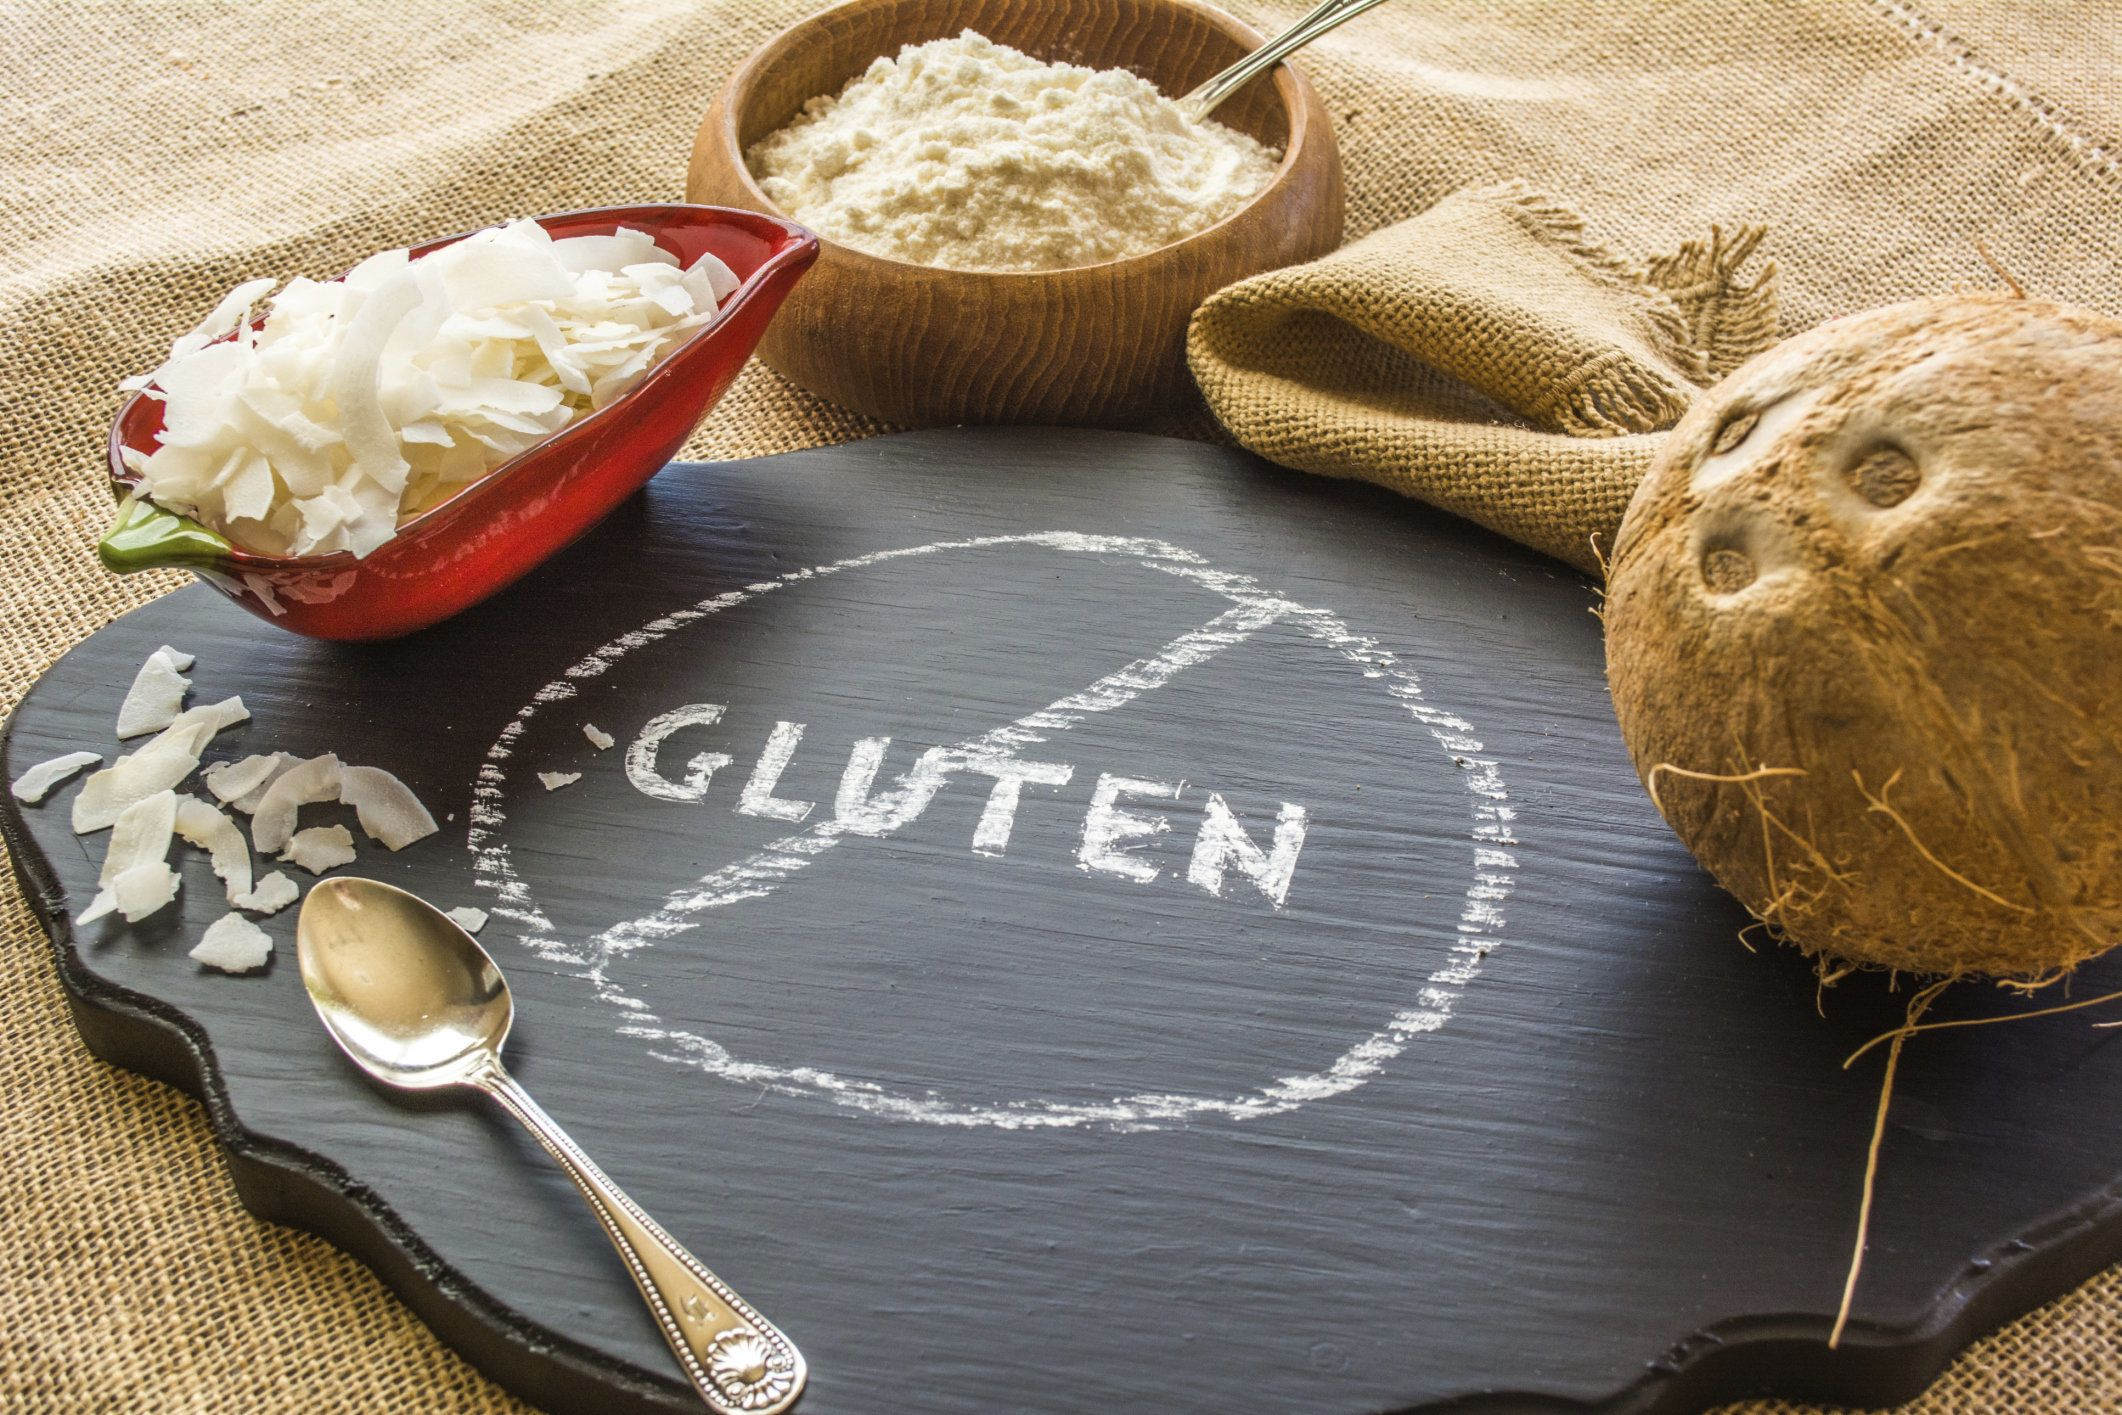 Photo of Coconut, Coconut chips and Coconut flour against a background of burlap with a no gluten chalkboard sign in the front.